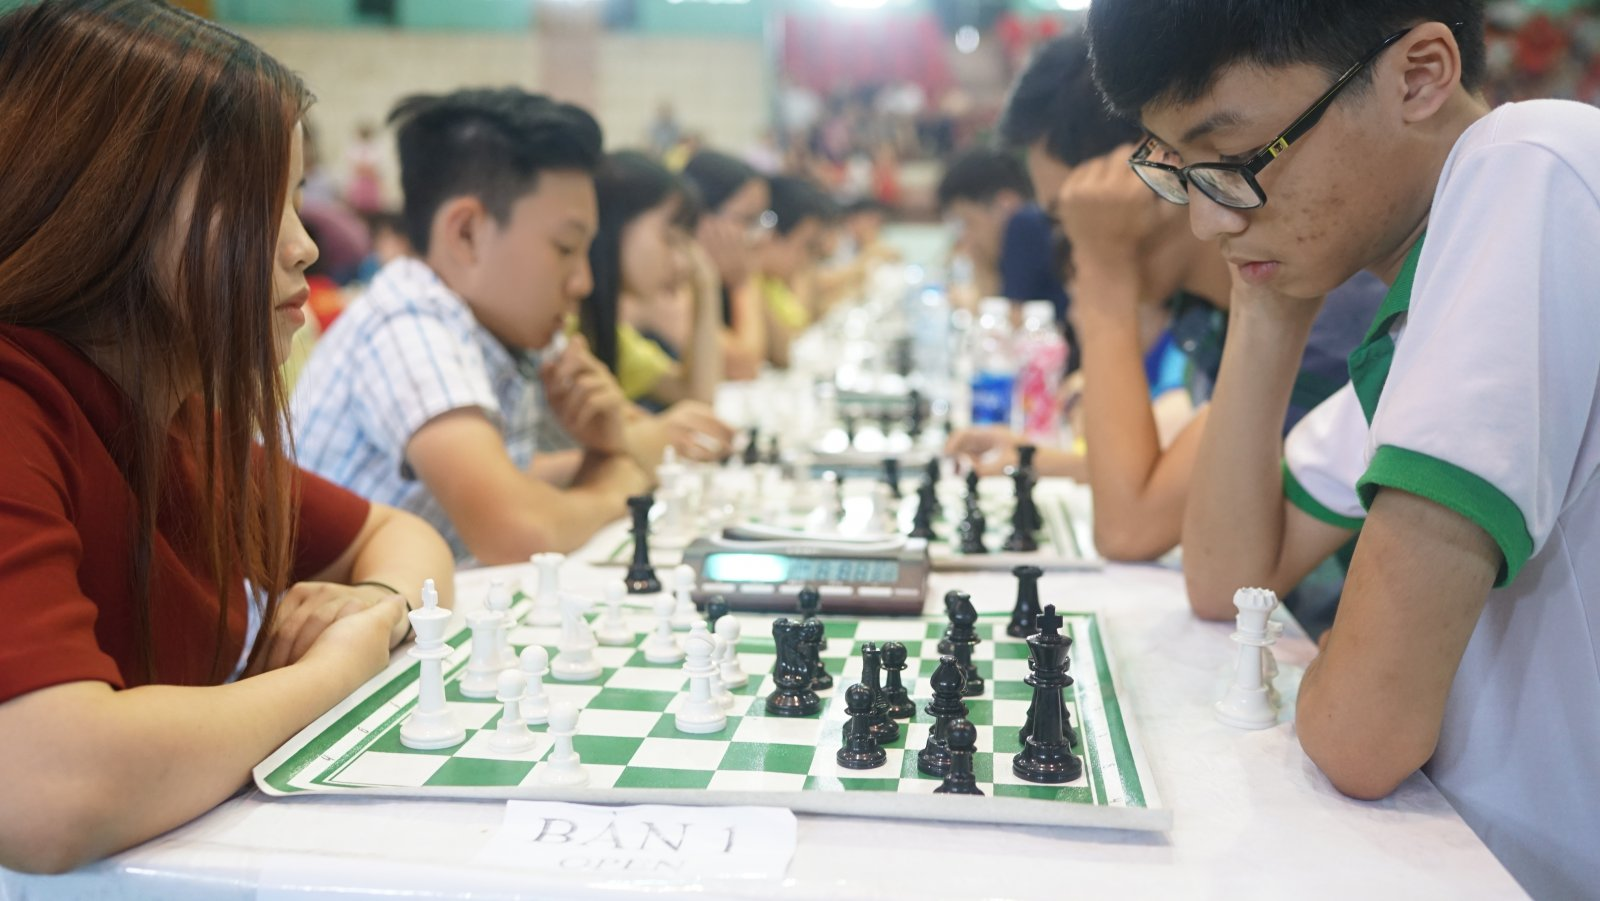 Checkmate Chess for Champions Nguyen Hung Vu